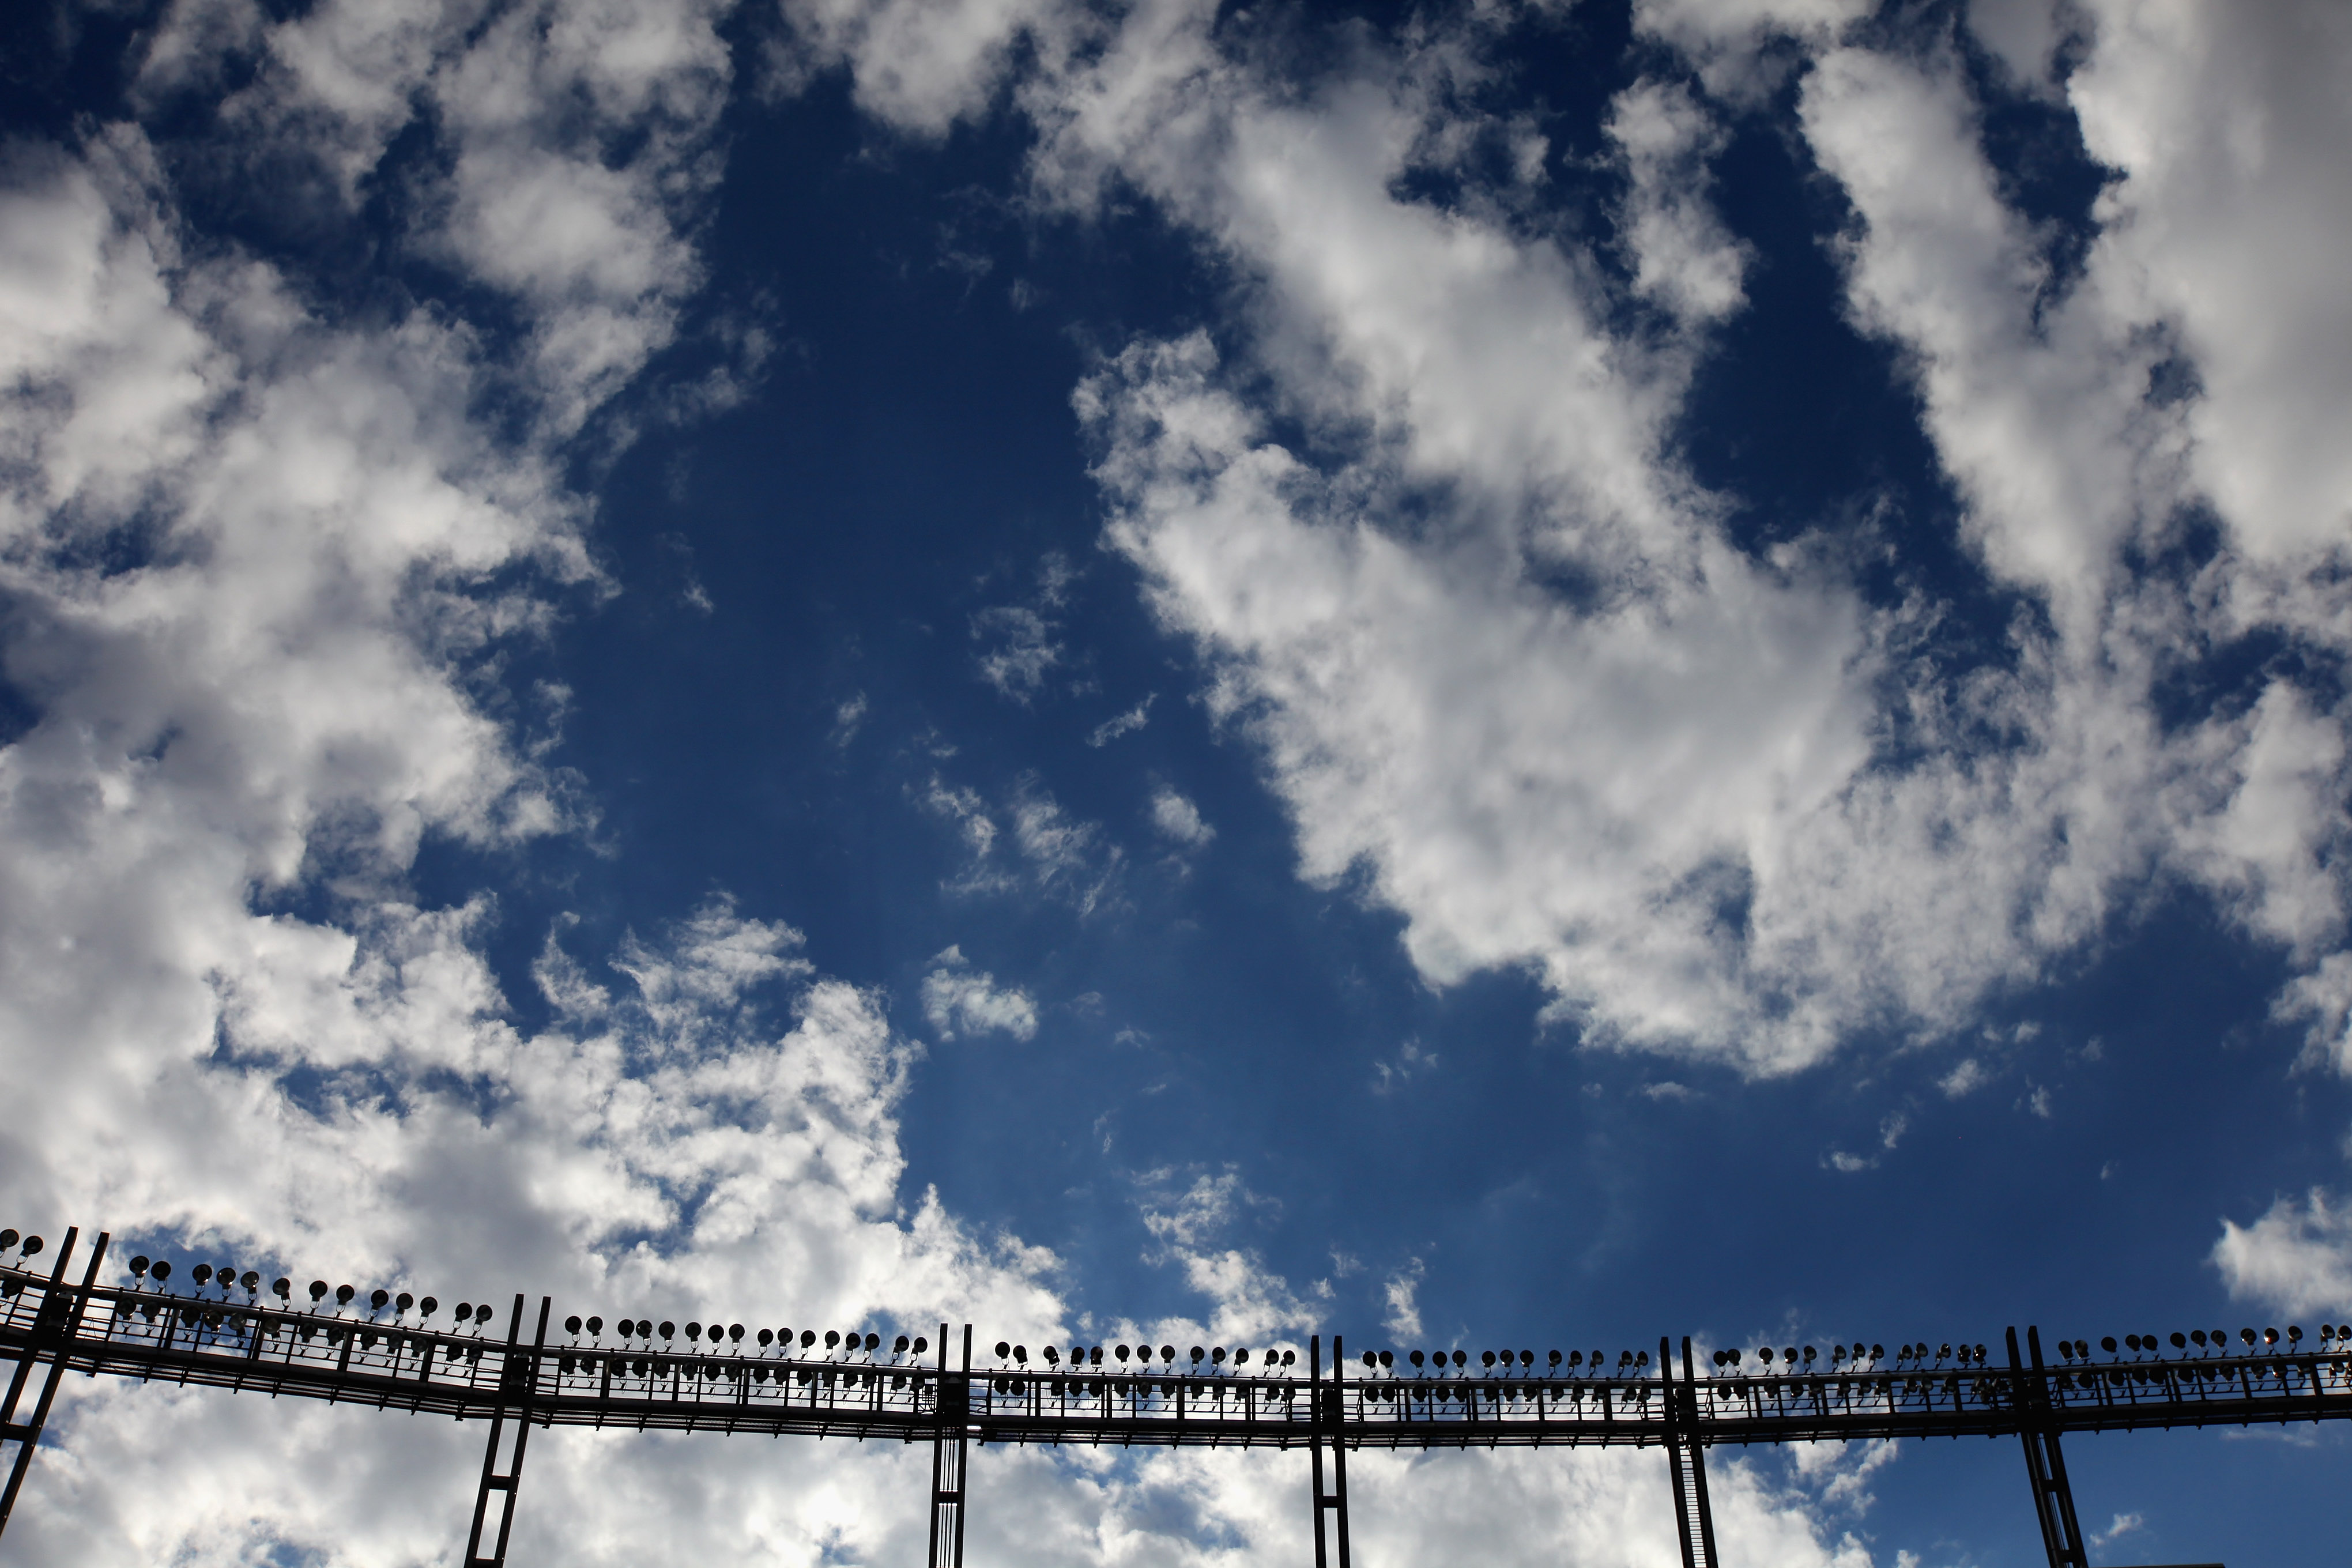 DENVER - AUGUST 21:  Stadium lights are at the ready as clouds filter the fading sun as the Denver Broncos host the Detroit Lions during preseason NFL action at INVESCO Field at Mile High on August 21, 2010 in Denver, Colorado.  (Photo by Doug Pensinger/G